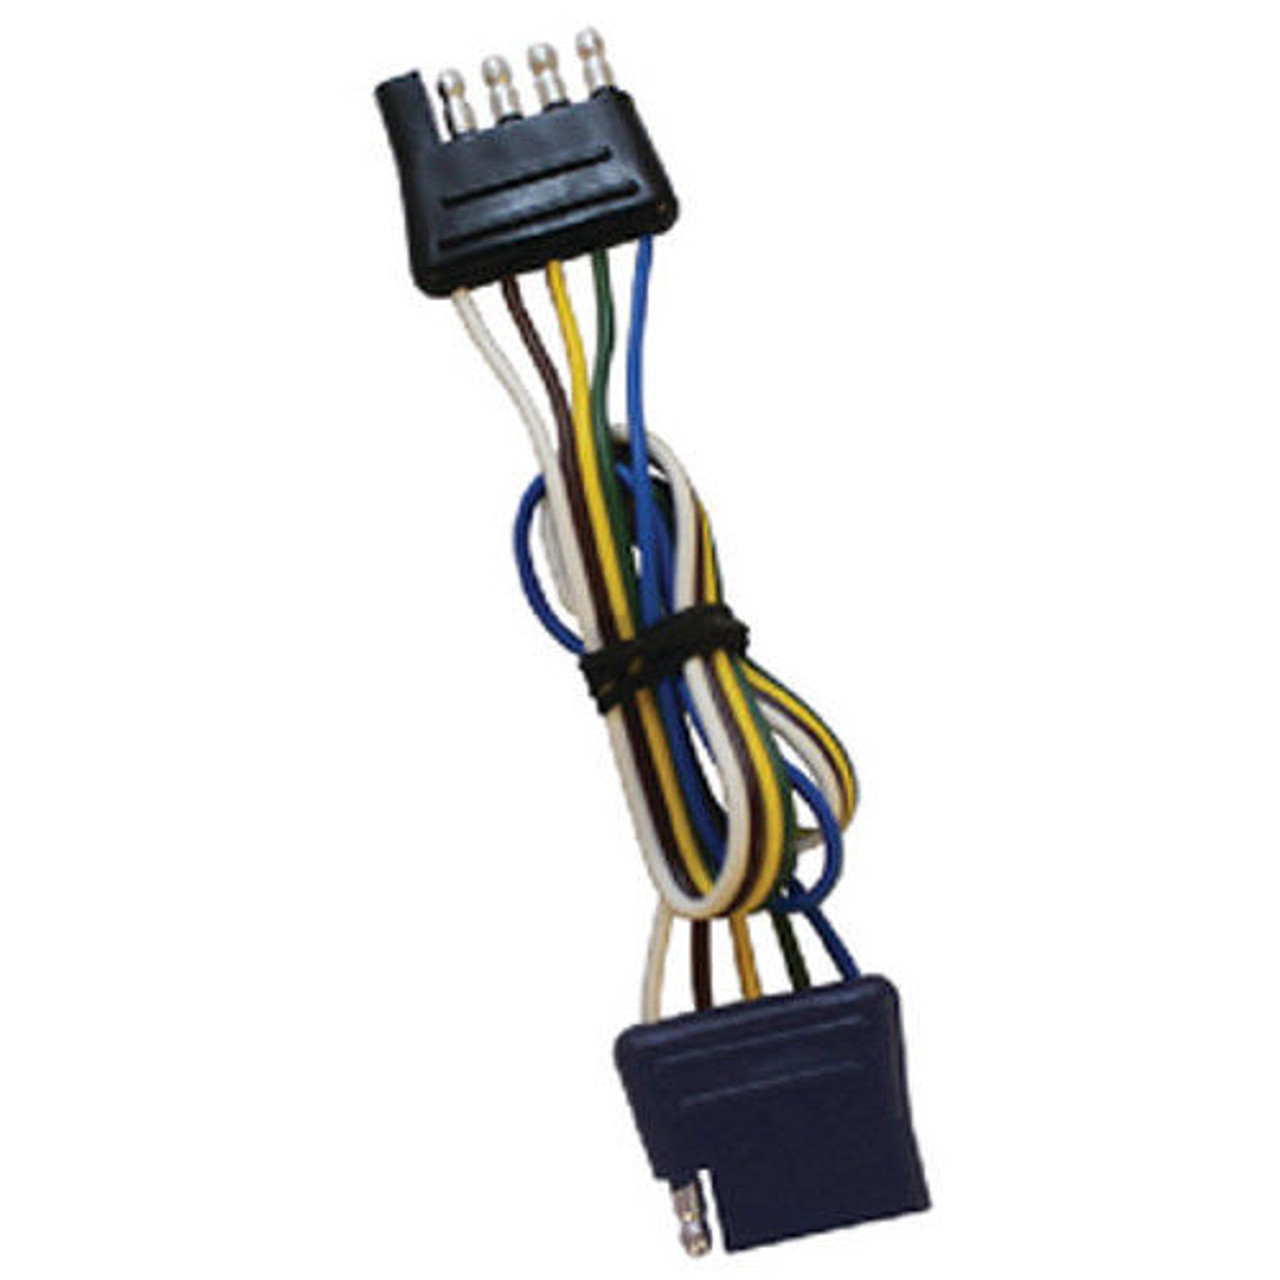 60 inch long flat 5 way boat trailer wiring harness extension flat extension wire 4 60 [ 1280 x 1280 Pixel ]